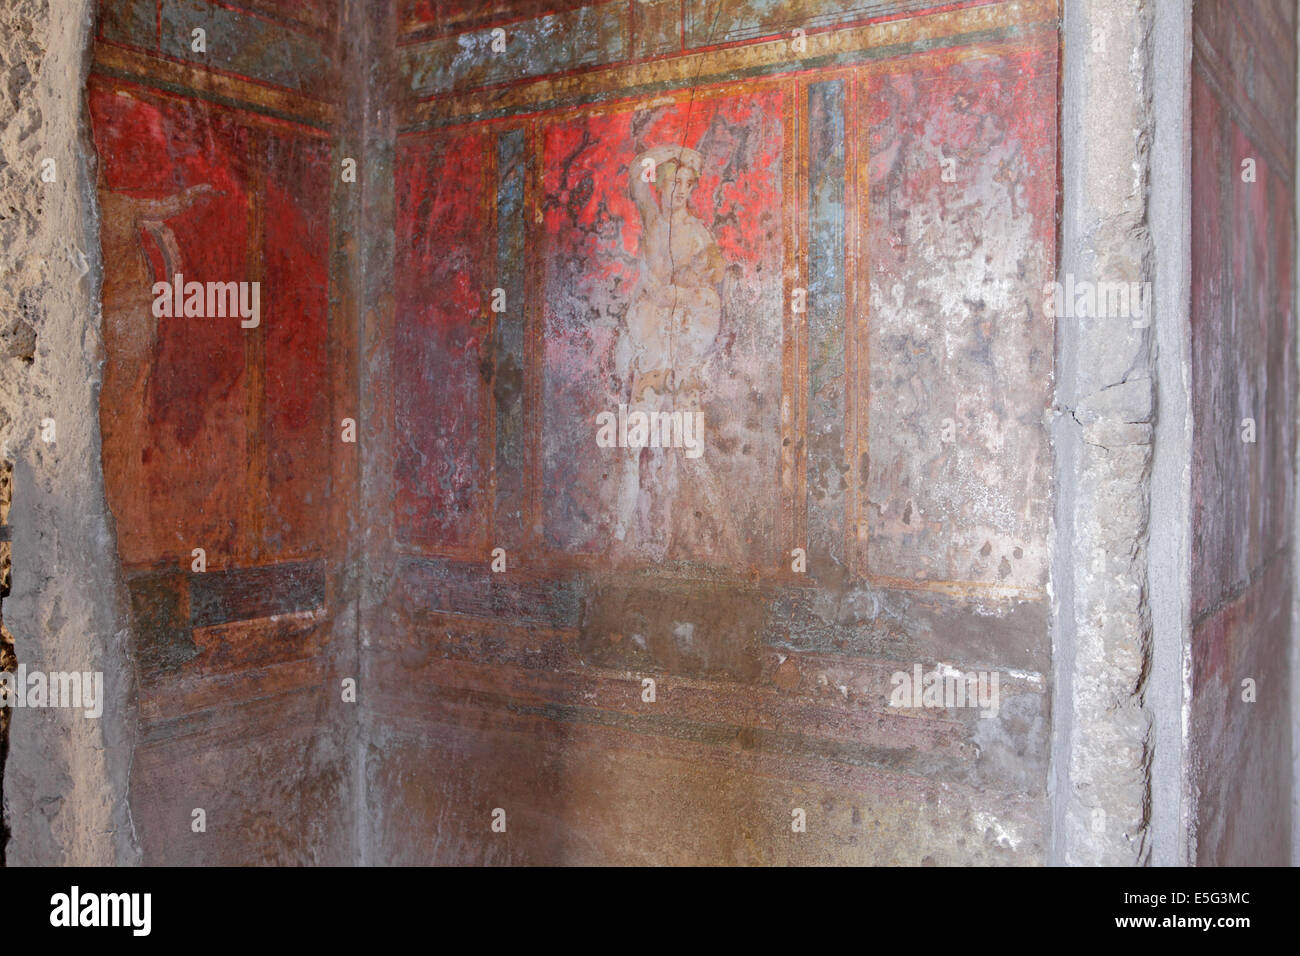 Original paintings in the Villa of the Mysteries, Pompeii, Naples, Italy - Stock Image